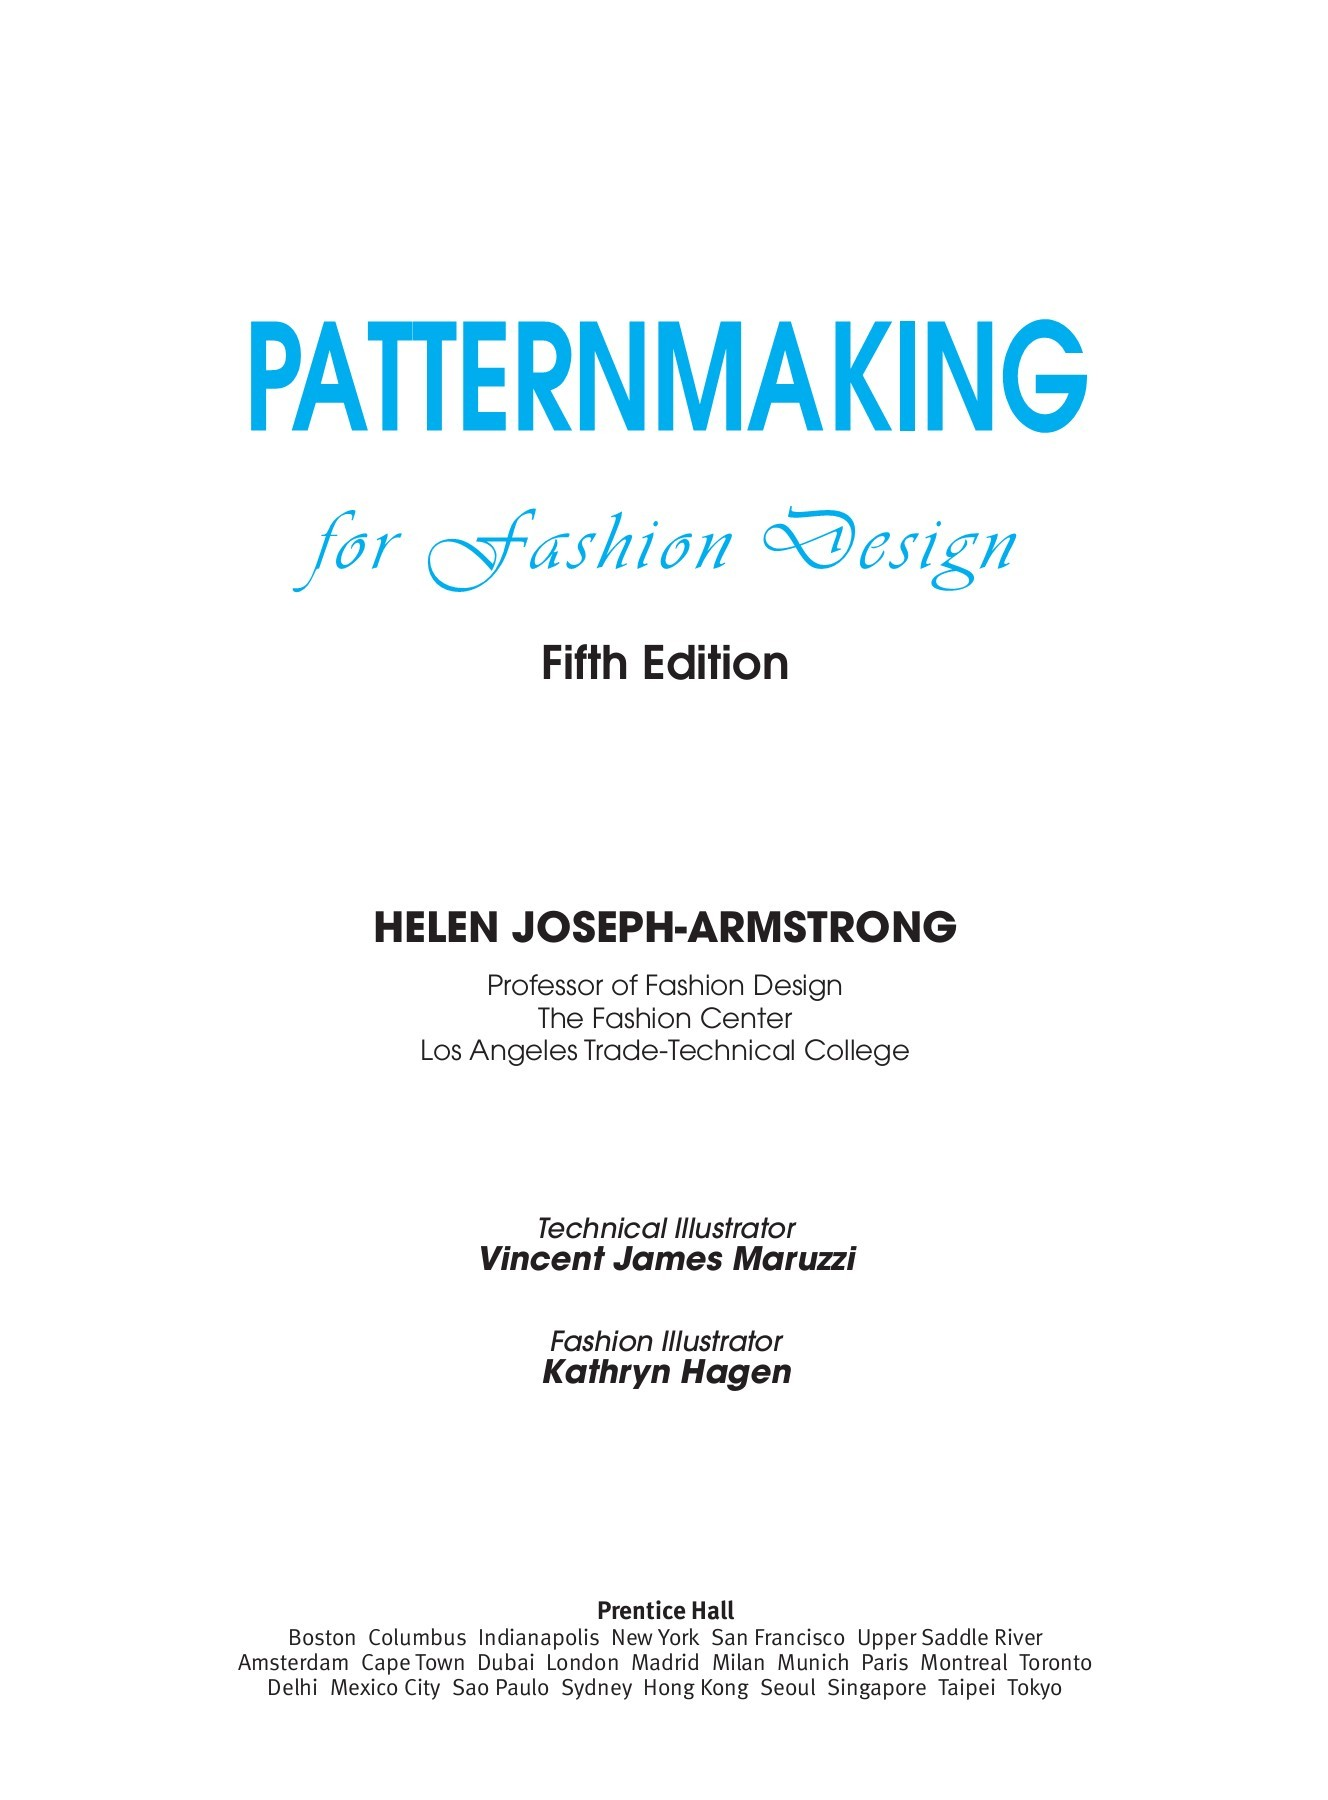 Pattern Making For Fashion Design 5th Edit 1 Flip Book Pages 1 50 Pubhtml5